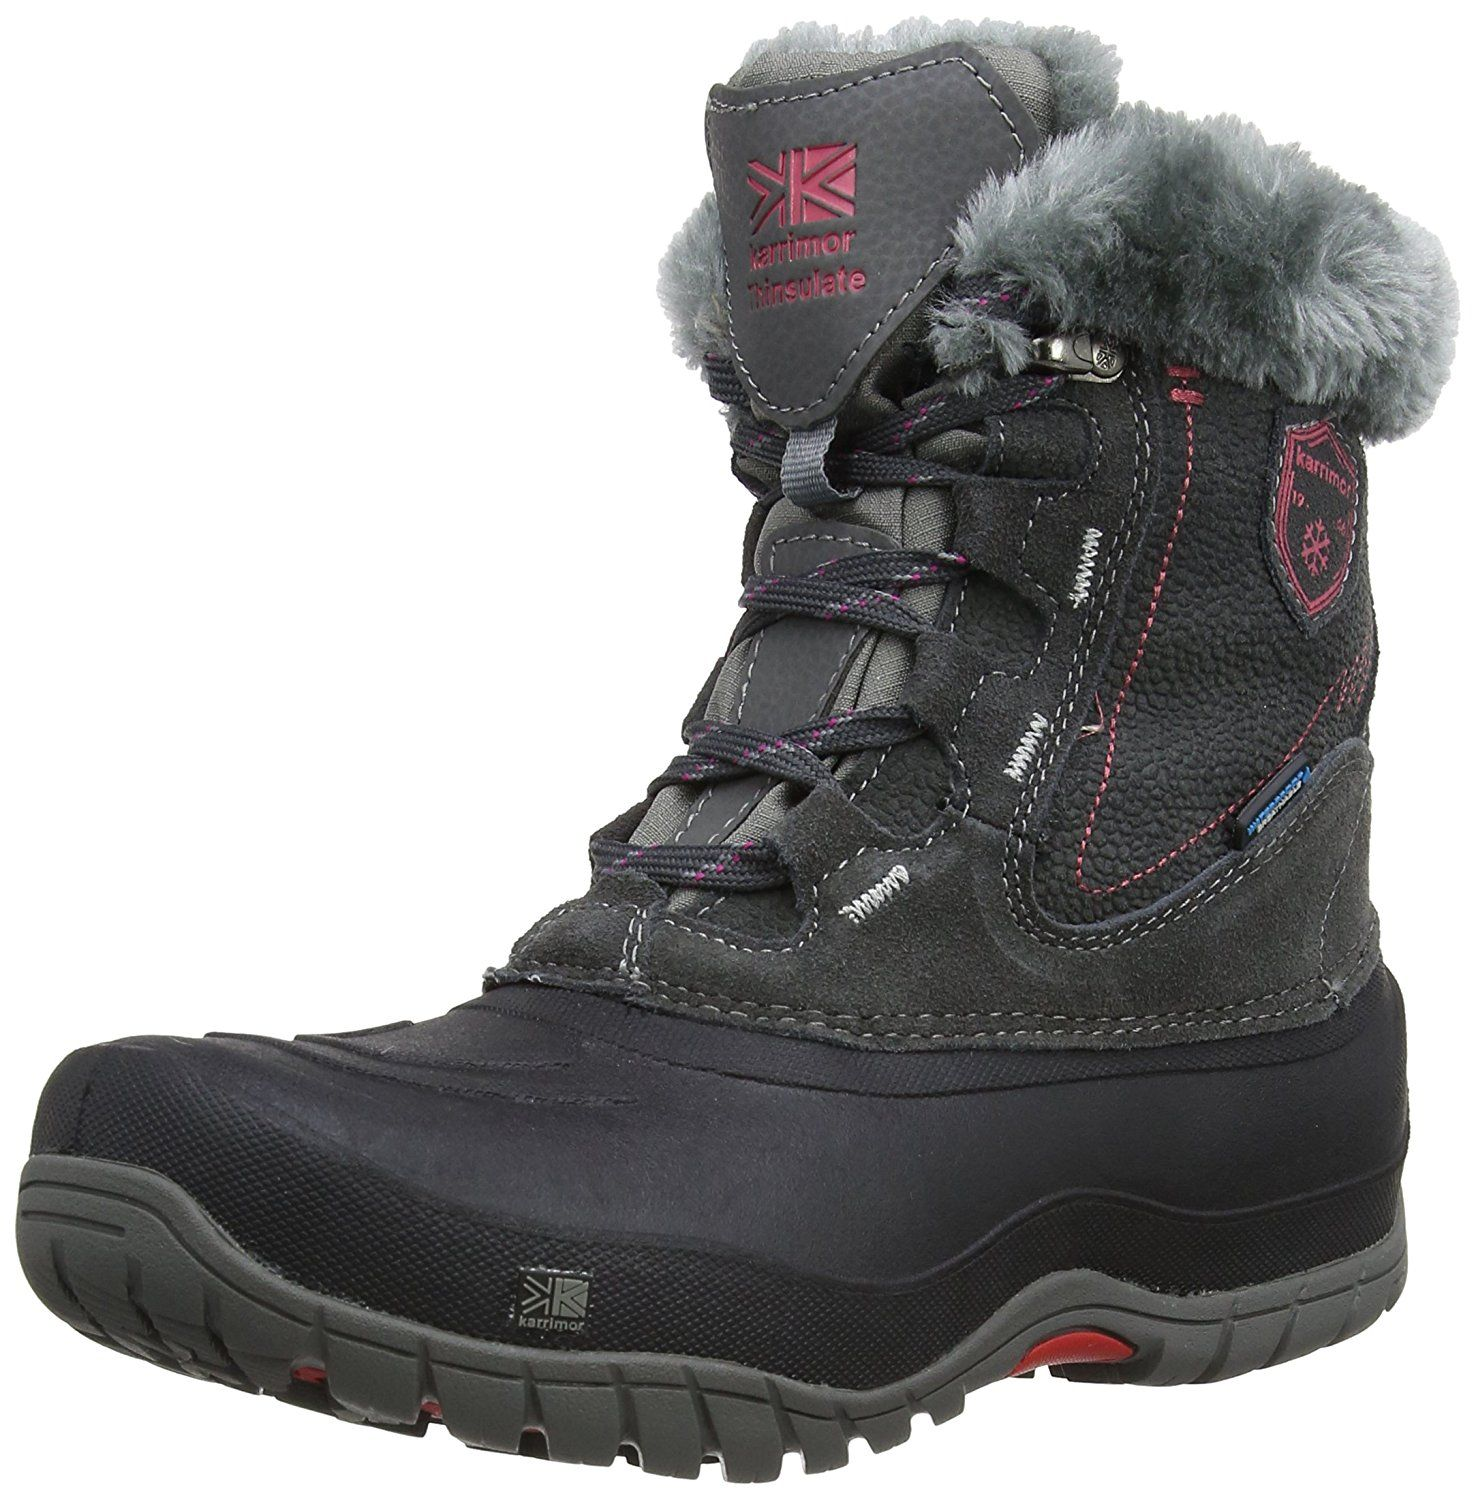 Snow boots women, Boots, Hiking shoes women